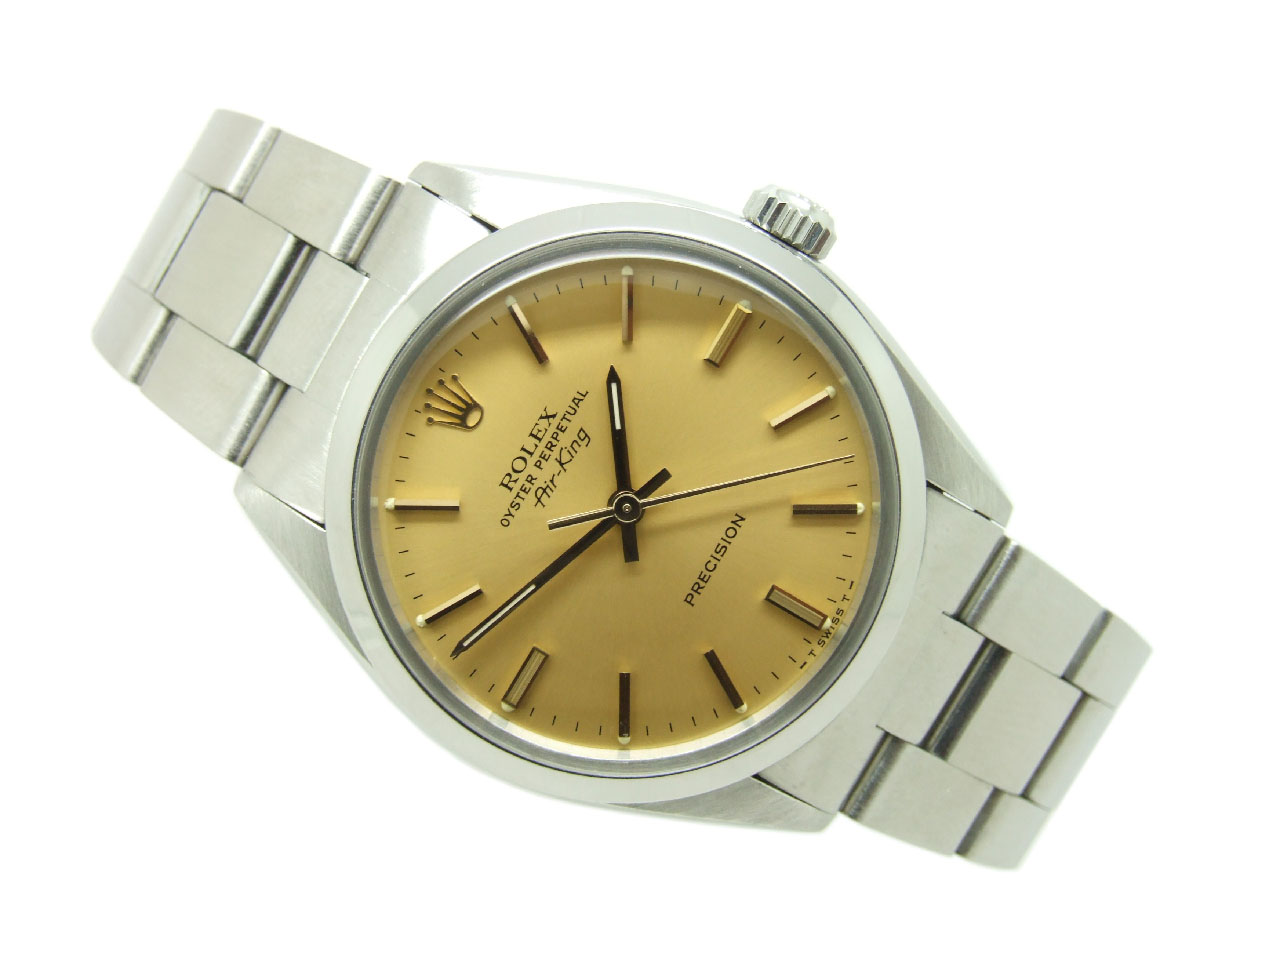 Sold 1980 Rolex Oyster Perpetual Air King Vintage Watch With Box Papers Vw641 Vintage Winders